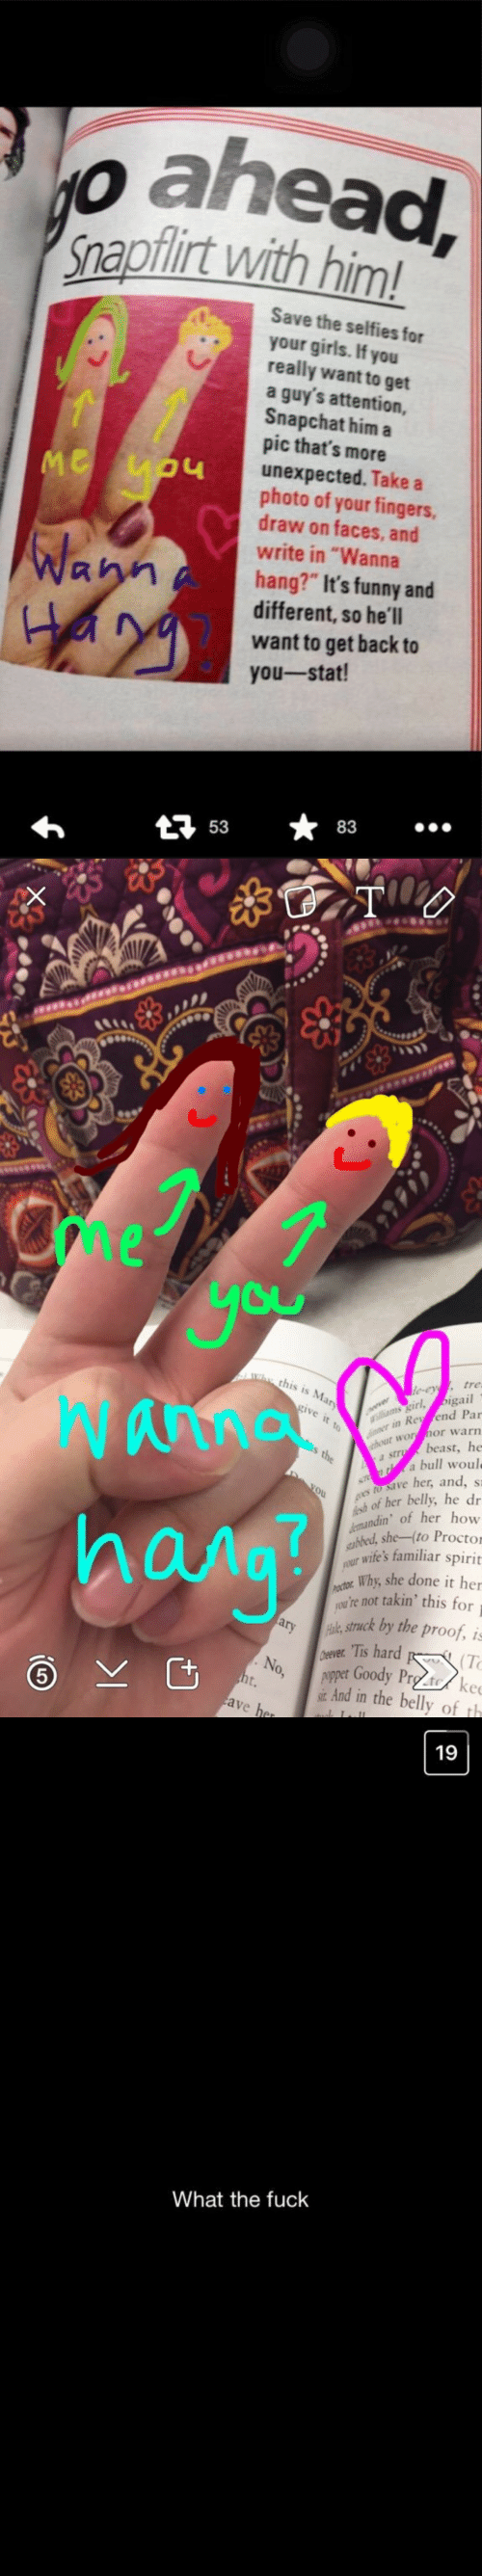 """Proctor: o ahead  napflirt with him!  Save the selfies for  your girls. If you  really want to get  a guy's attention,  Snapchat him a  pic that's more  unexpected. Take a  photo of your fingers,  draw on faces, and  write in """"Wanna  hang?"""" It's funny and  different, so he'll  want to get back to  you-stat!  LI  Wa  At 5383   me  Cu  th  , tre  igail  in Rey fend Par  ut worhor warn  Wanna  hana  ms girl,  It  beast, he  a bull woul  a s  save her, and, s  h of her belly, he dr  ndin of her how  she-(to Proctor  ur wife's familiar spirit  Why, she done it her  arykstruck by the proof, is  No, pet Goody Prg to/ ke  ou're not takin' this for  : Tis hard K.  (T  And in the belly of th   19  What the fuck"""